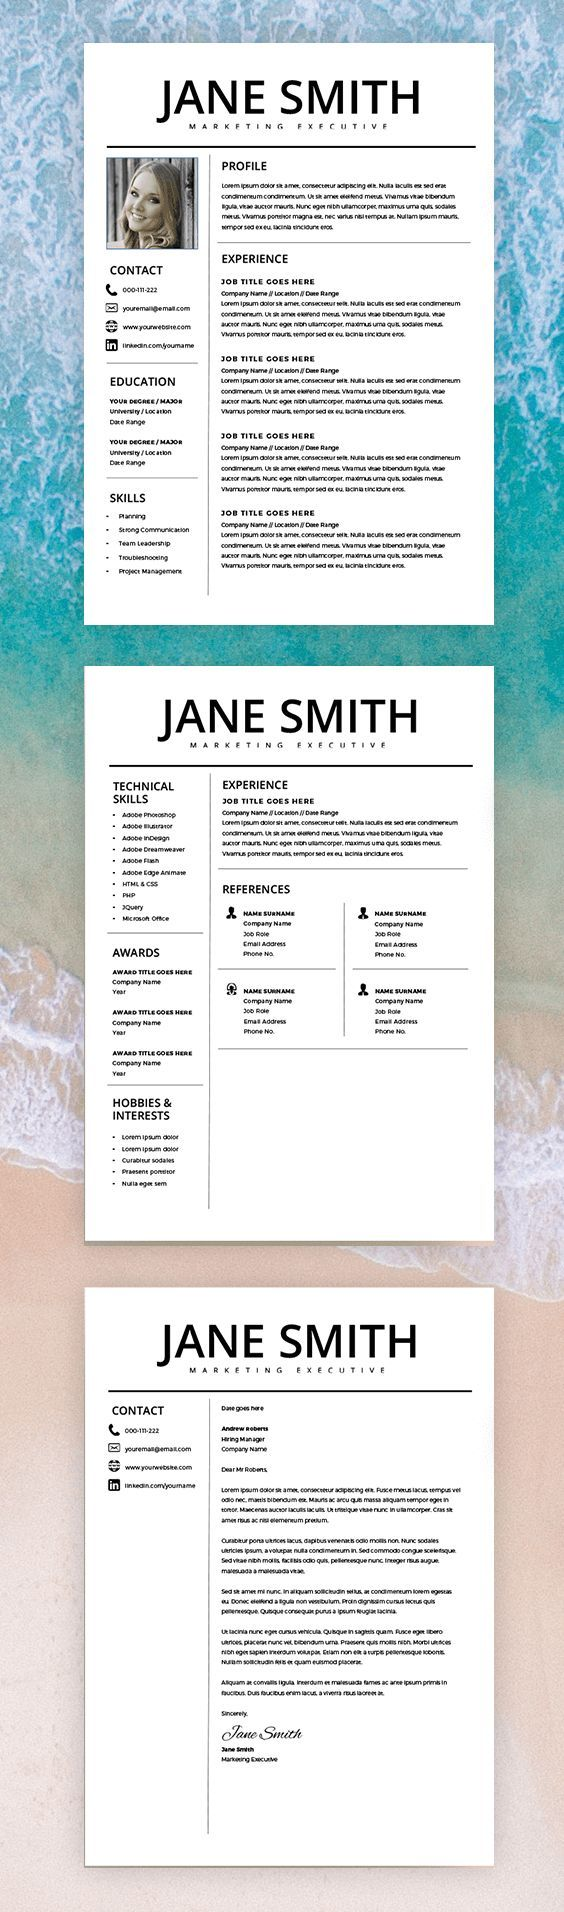 Download Free Professional Resume Templates Professional Resume Template  Ms Word Compatible  Best Cv Template .